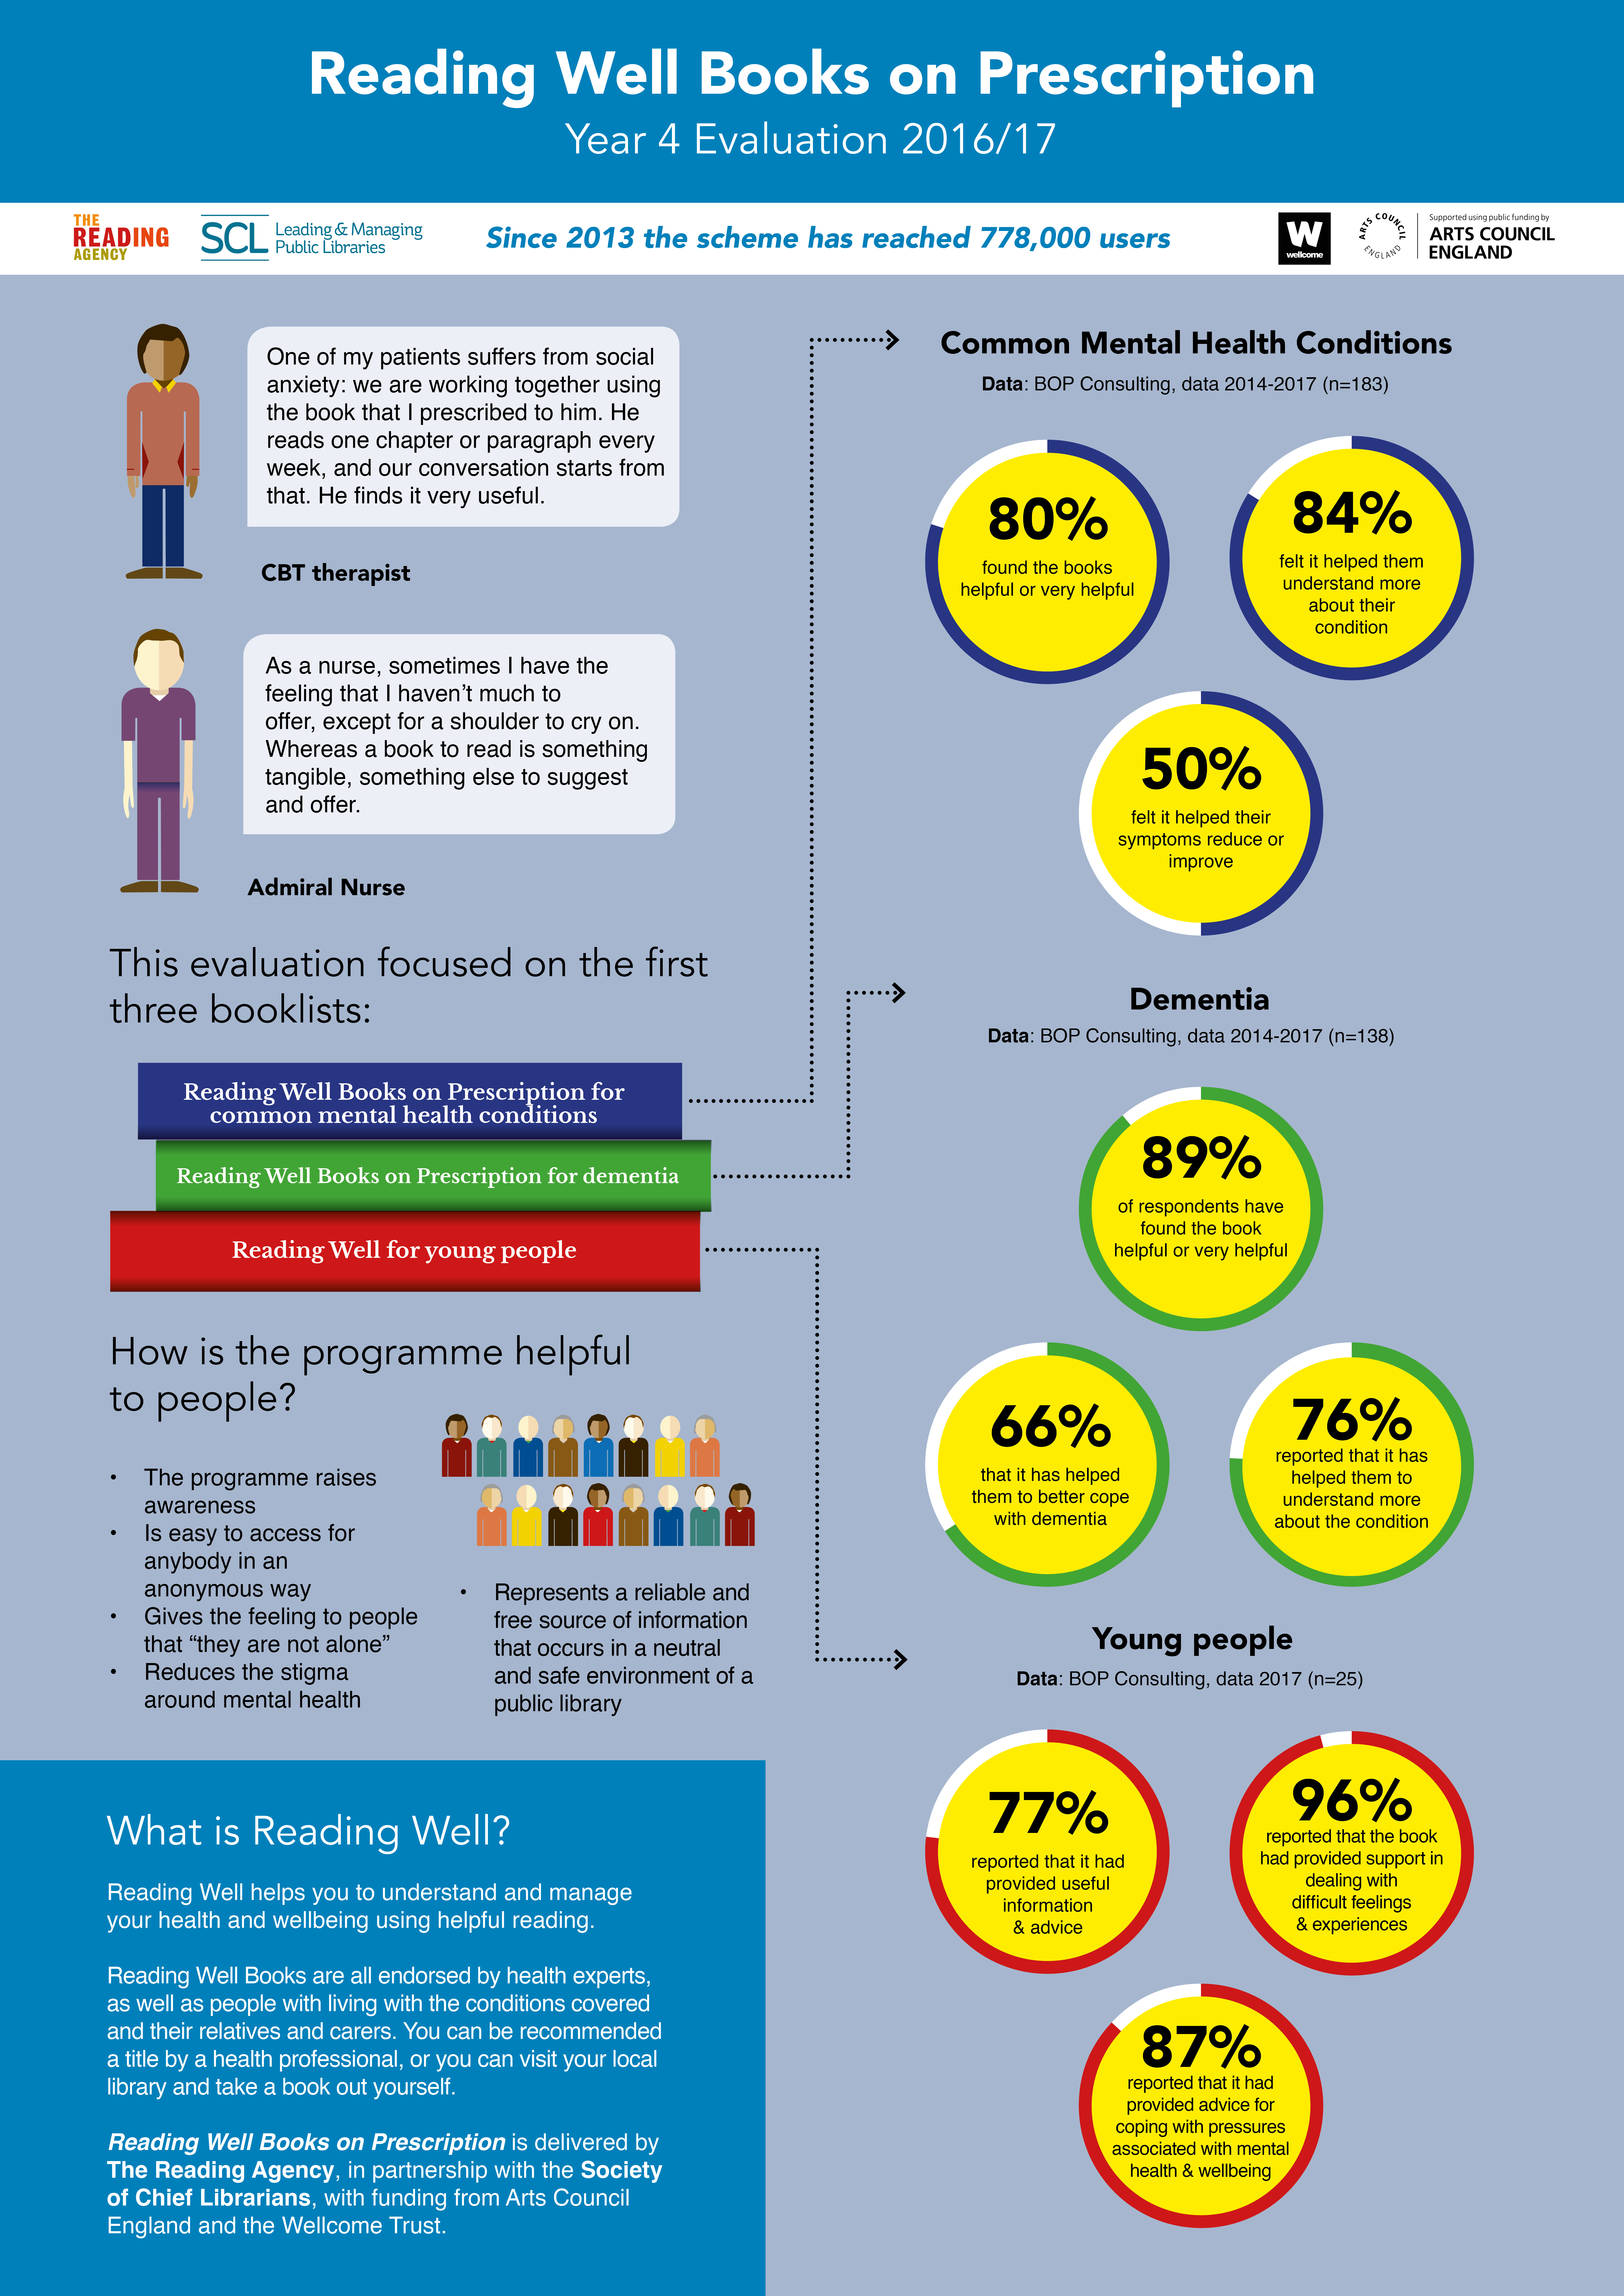 World Mental Health Day And The 2016 17 Evaluation Of Reading Well